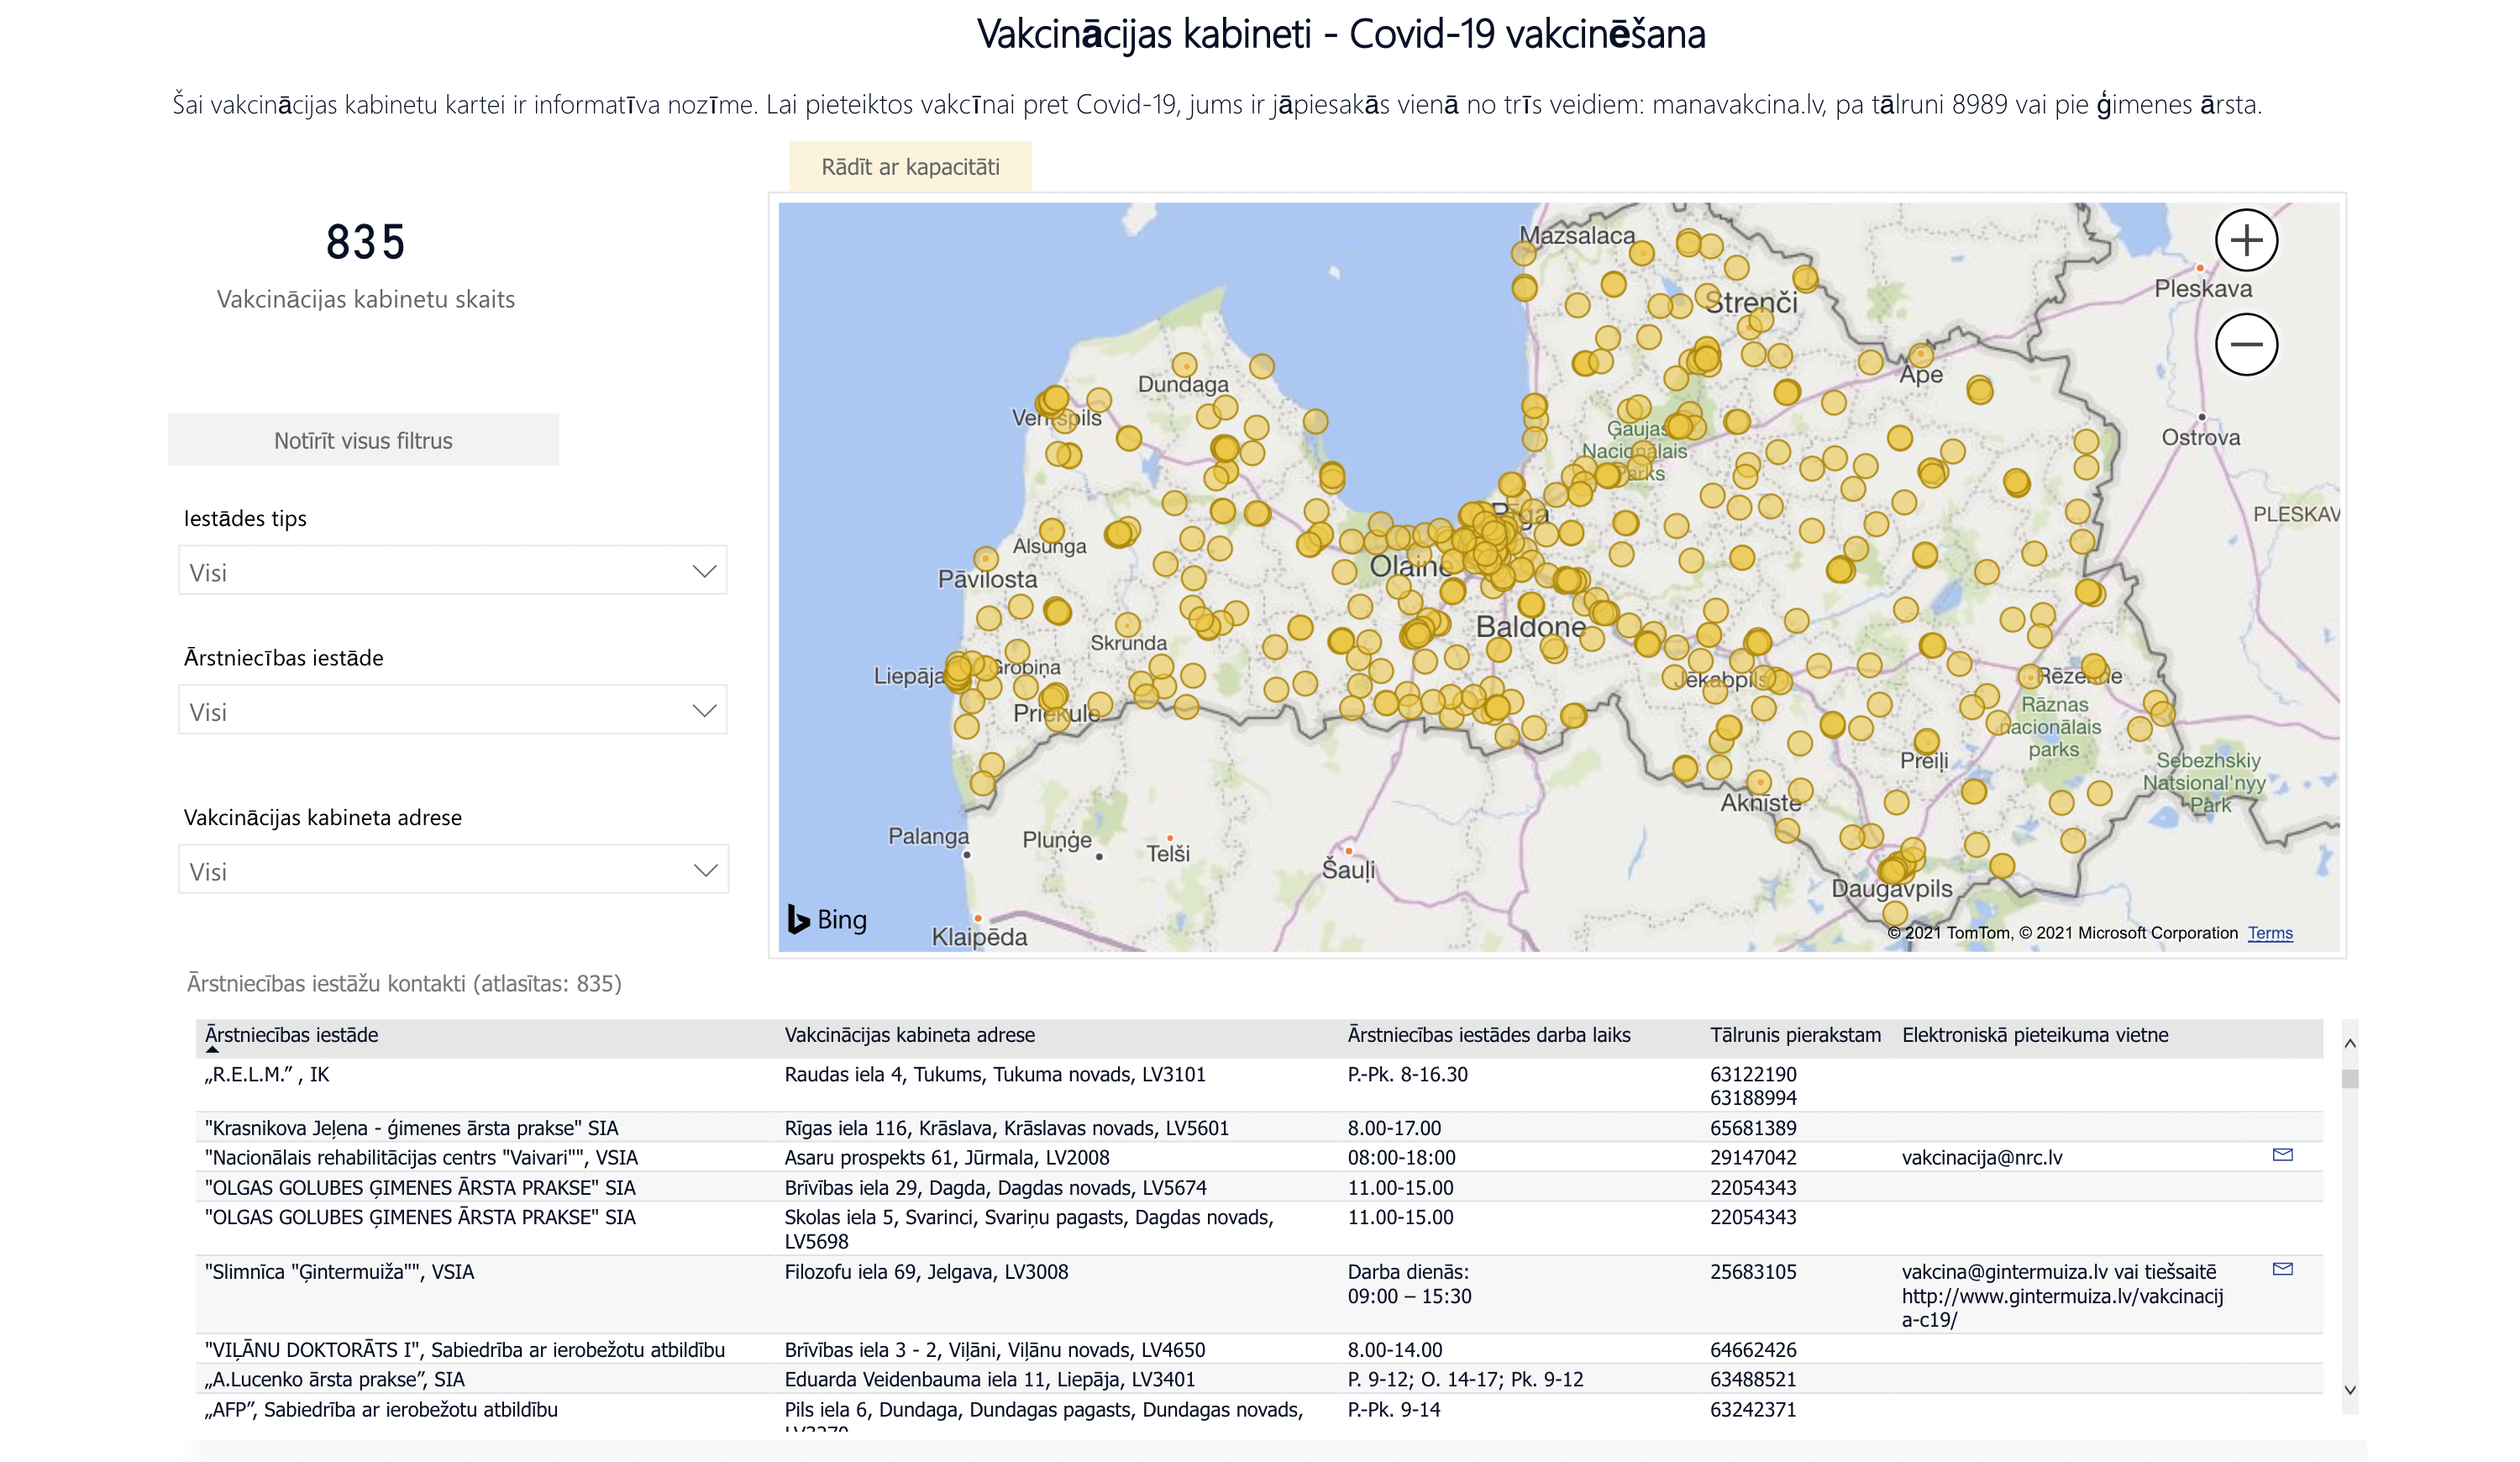 vaccination centres in latvia map